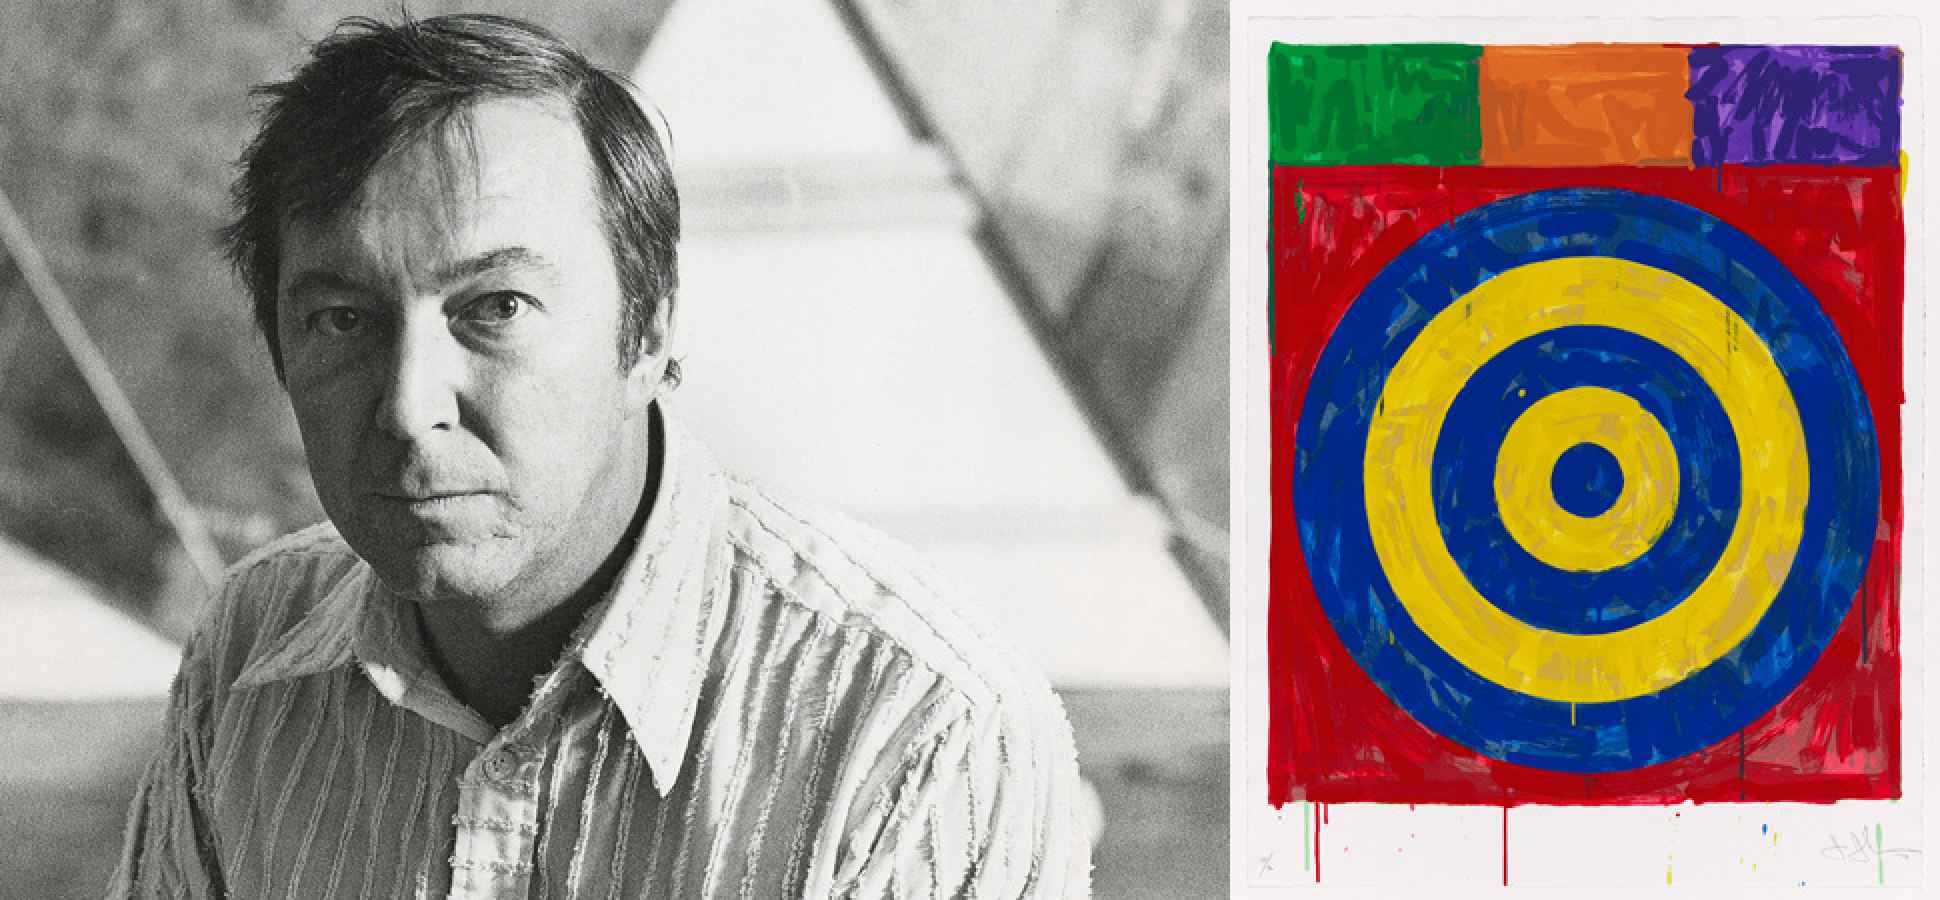 Design Lessons from the Work of Artist Jasper Johns | Inc.com